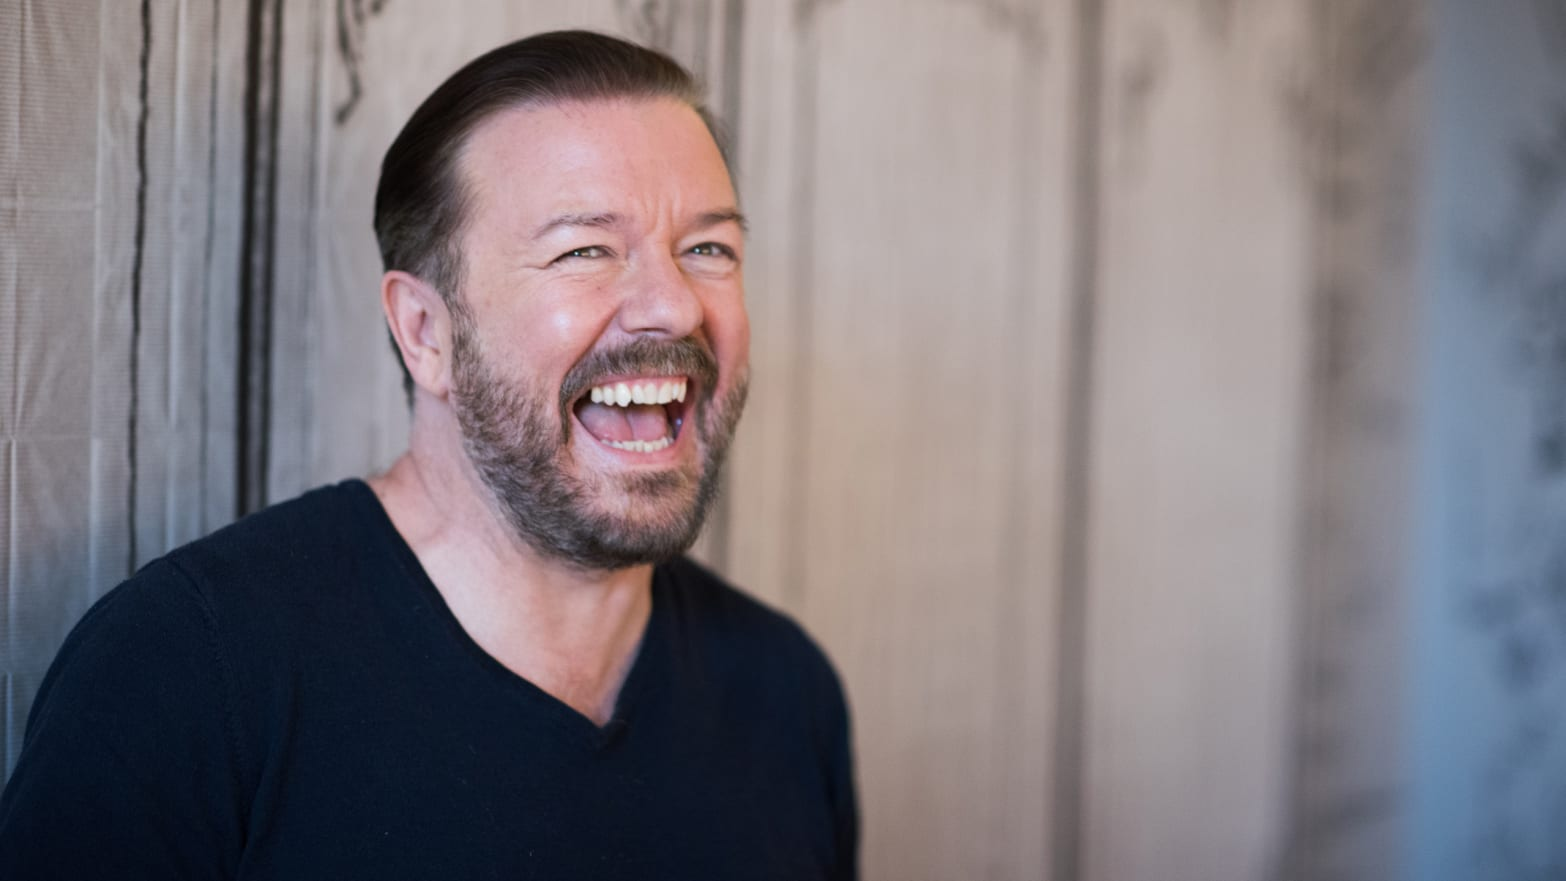 Ricky Gervais's Plea for Humanity: 'We've Got to End This Madness'